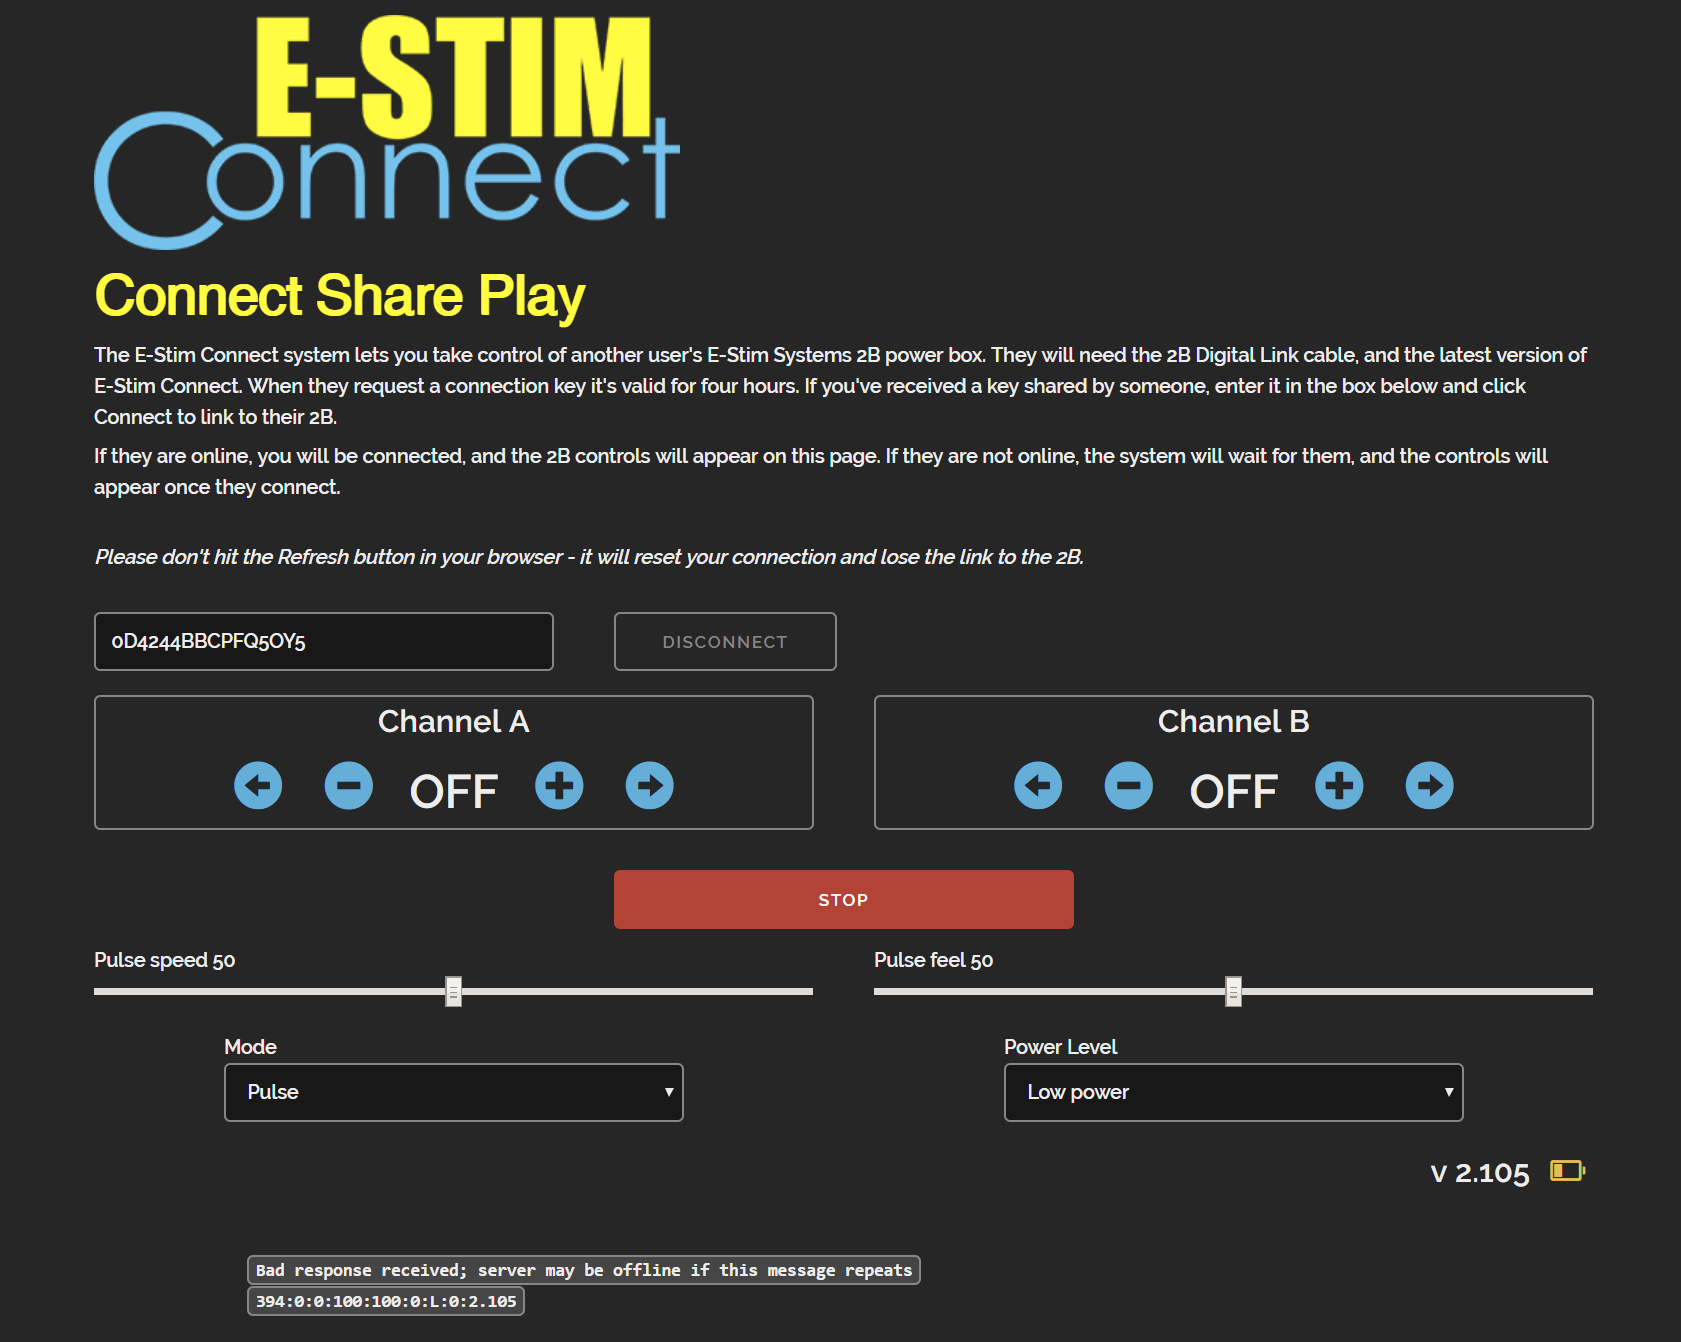 E-Stim Connect main screen